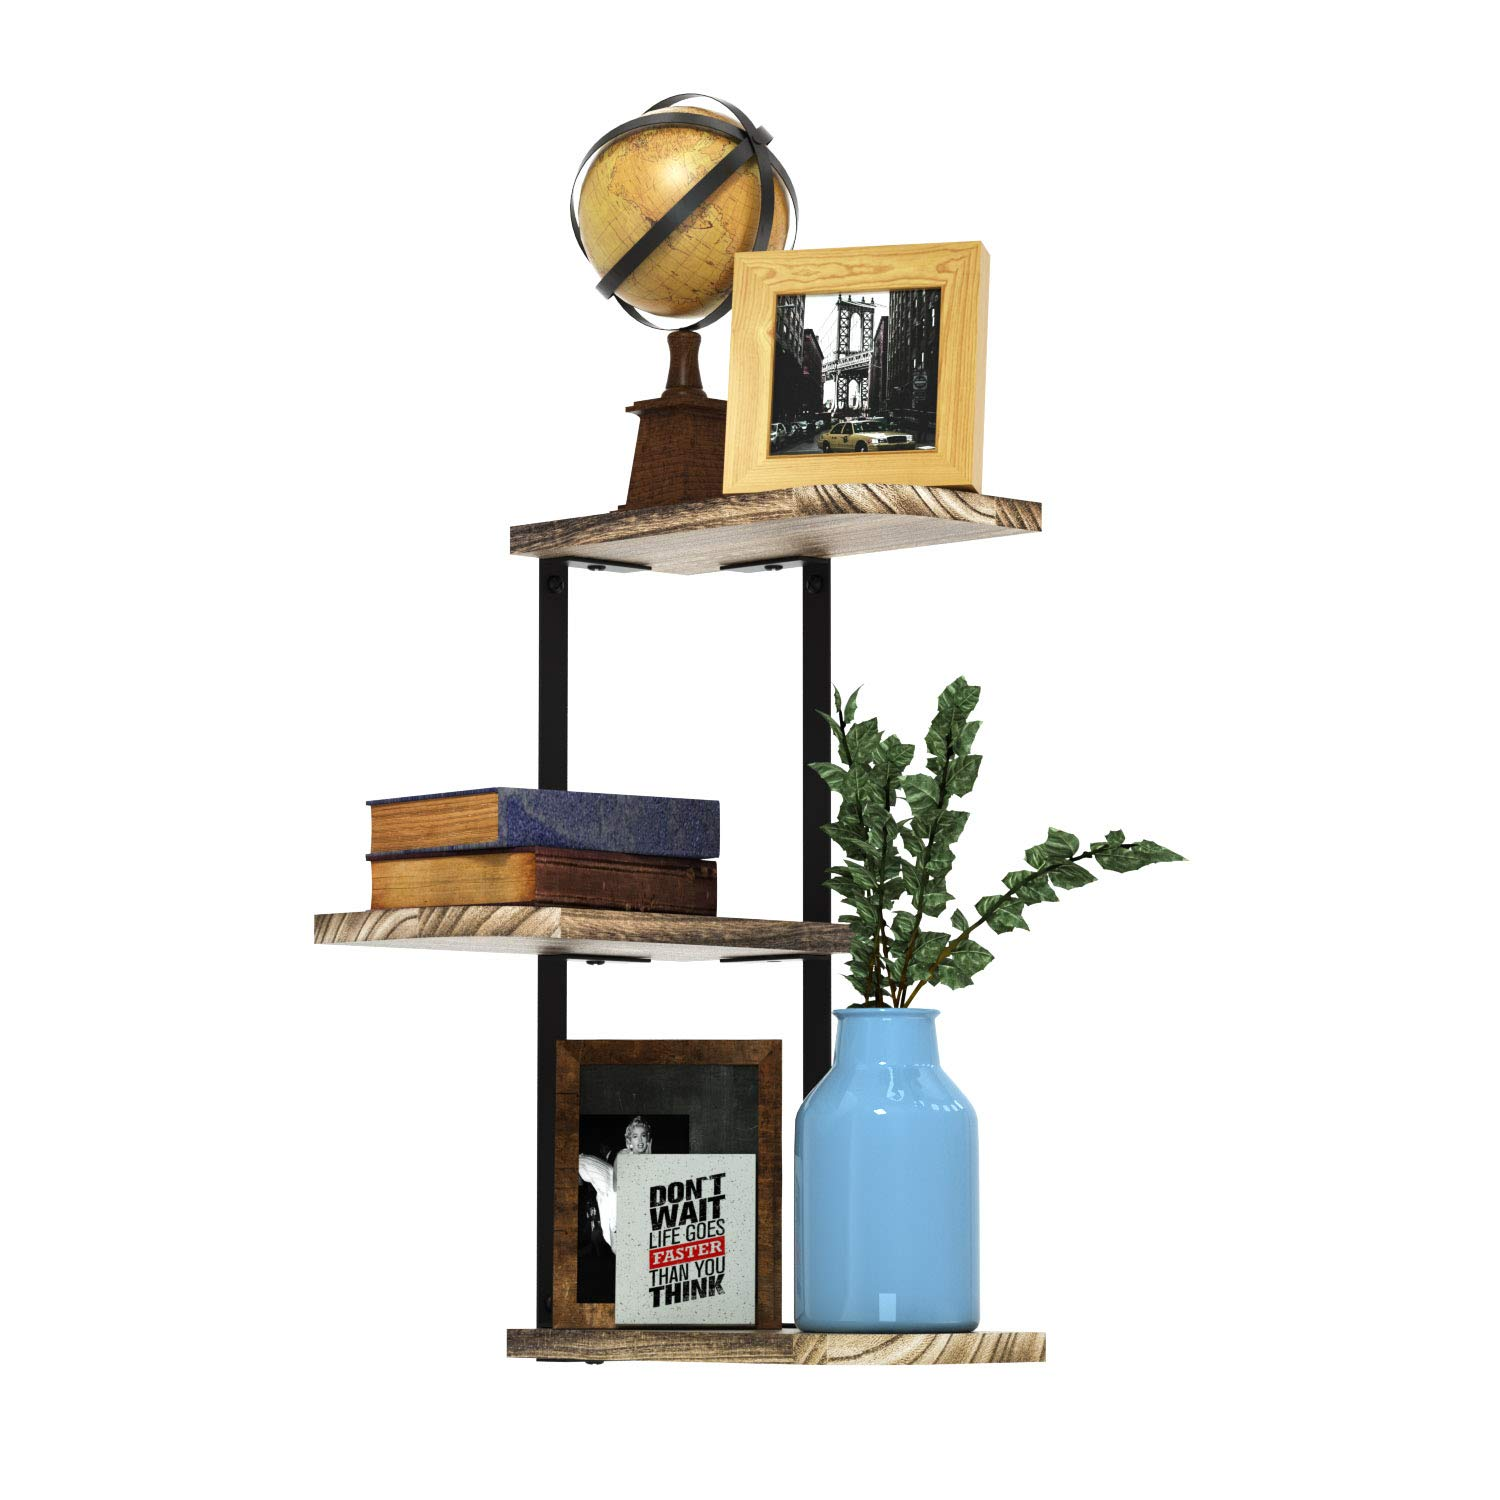 Love-KANKEI Corner Shelf Wall Mount of 3 Tier Rustic Wood Floating Shelves for Bedroom, Living Room, Bathroom, Kitchen, Office and More